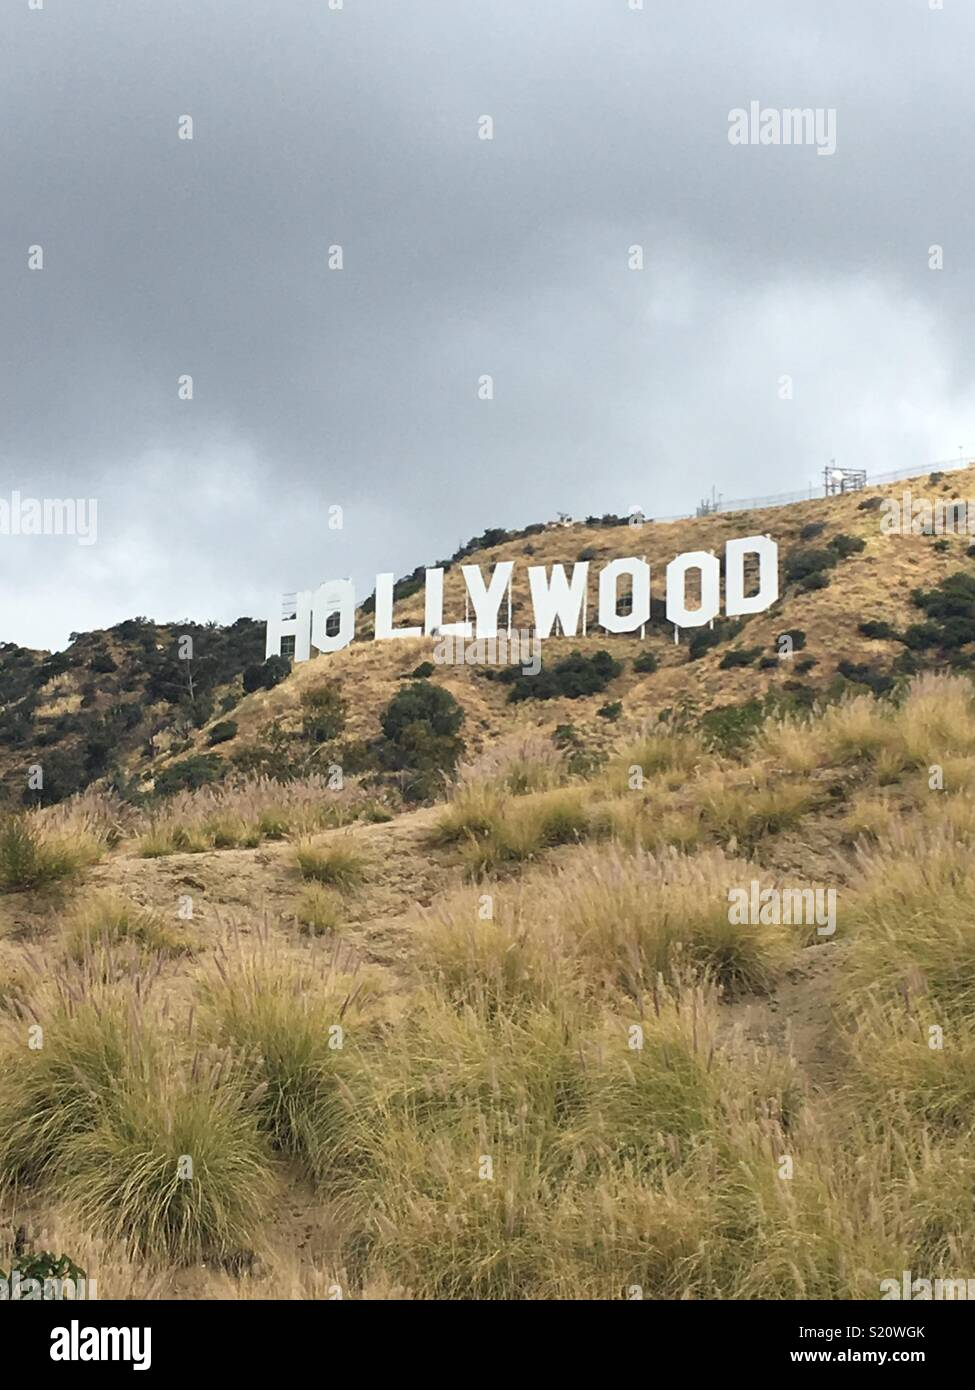 Hollywood dark cloud Photo Stock